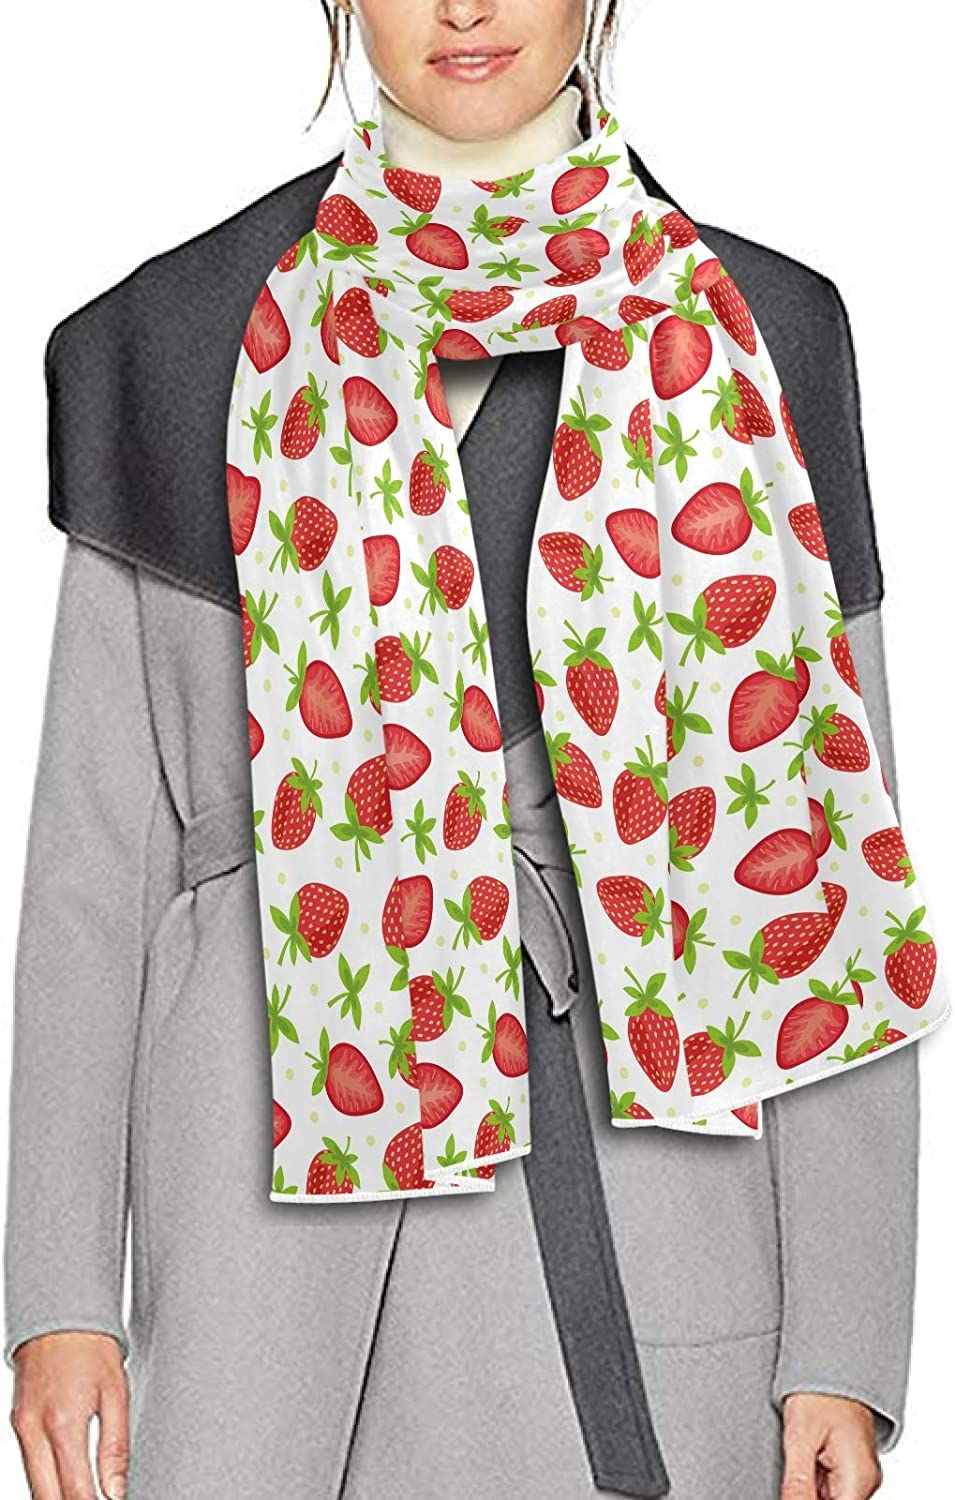 Scarf for Women and Men Red Fruits Strawberry Blanket Shawl Scarves Wraps Soft Thick Winter Large Scarves Lightweight